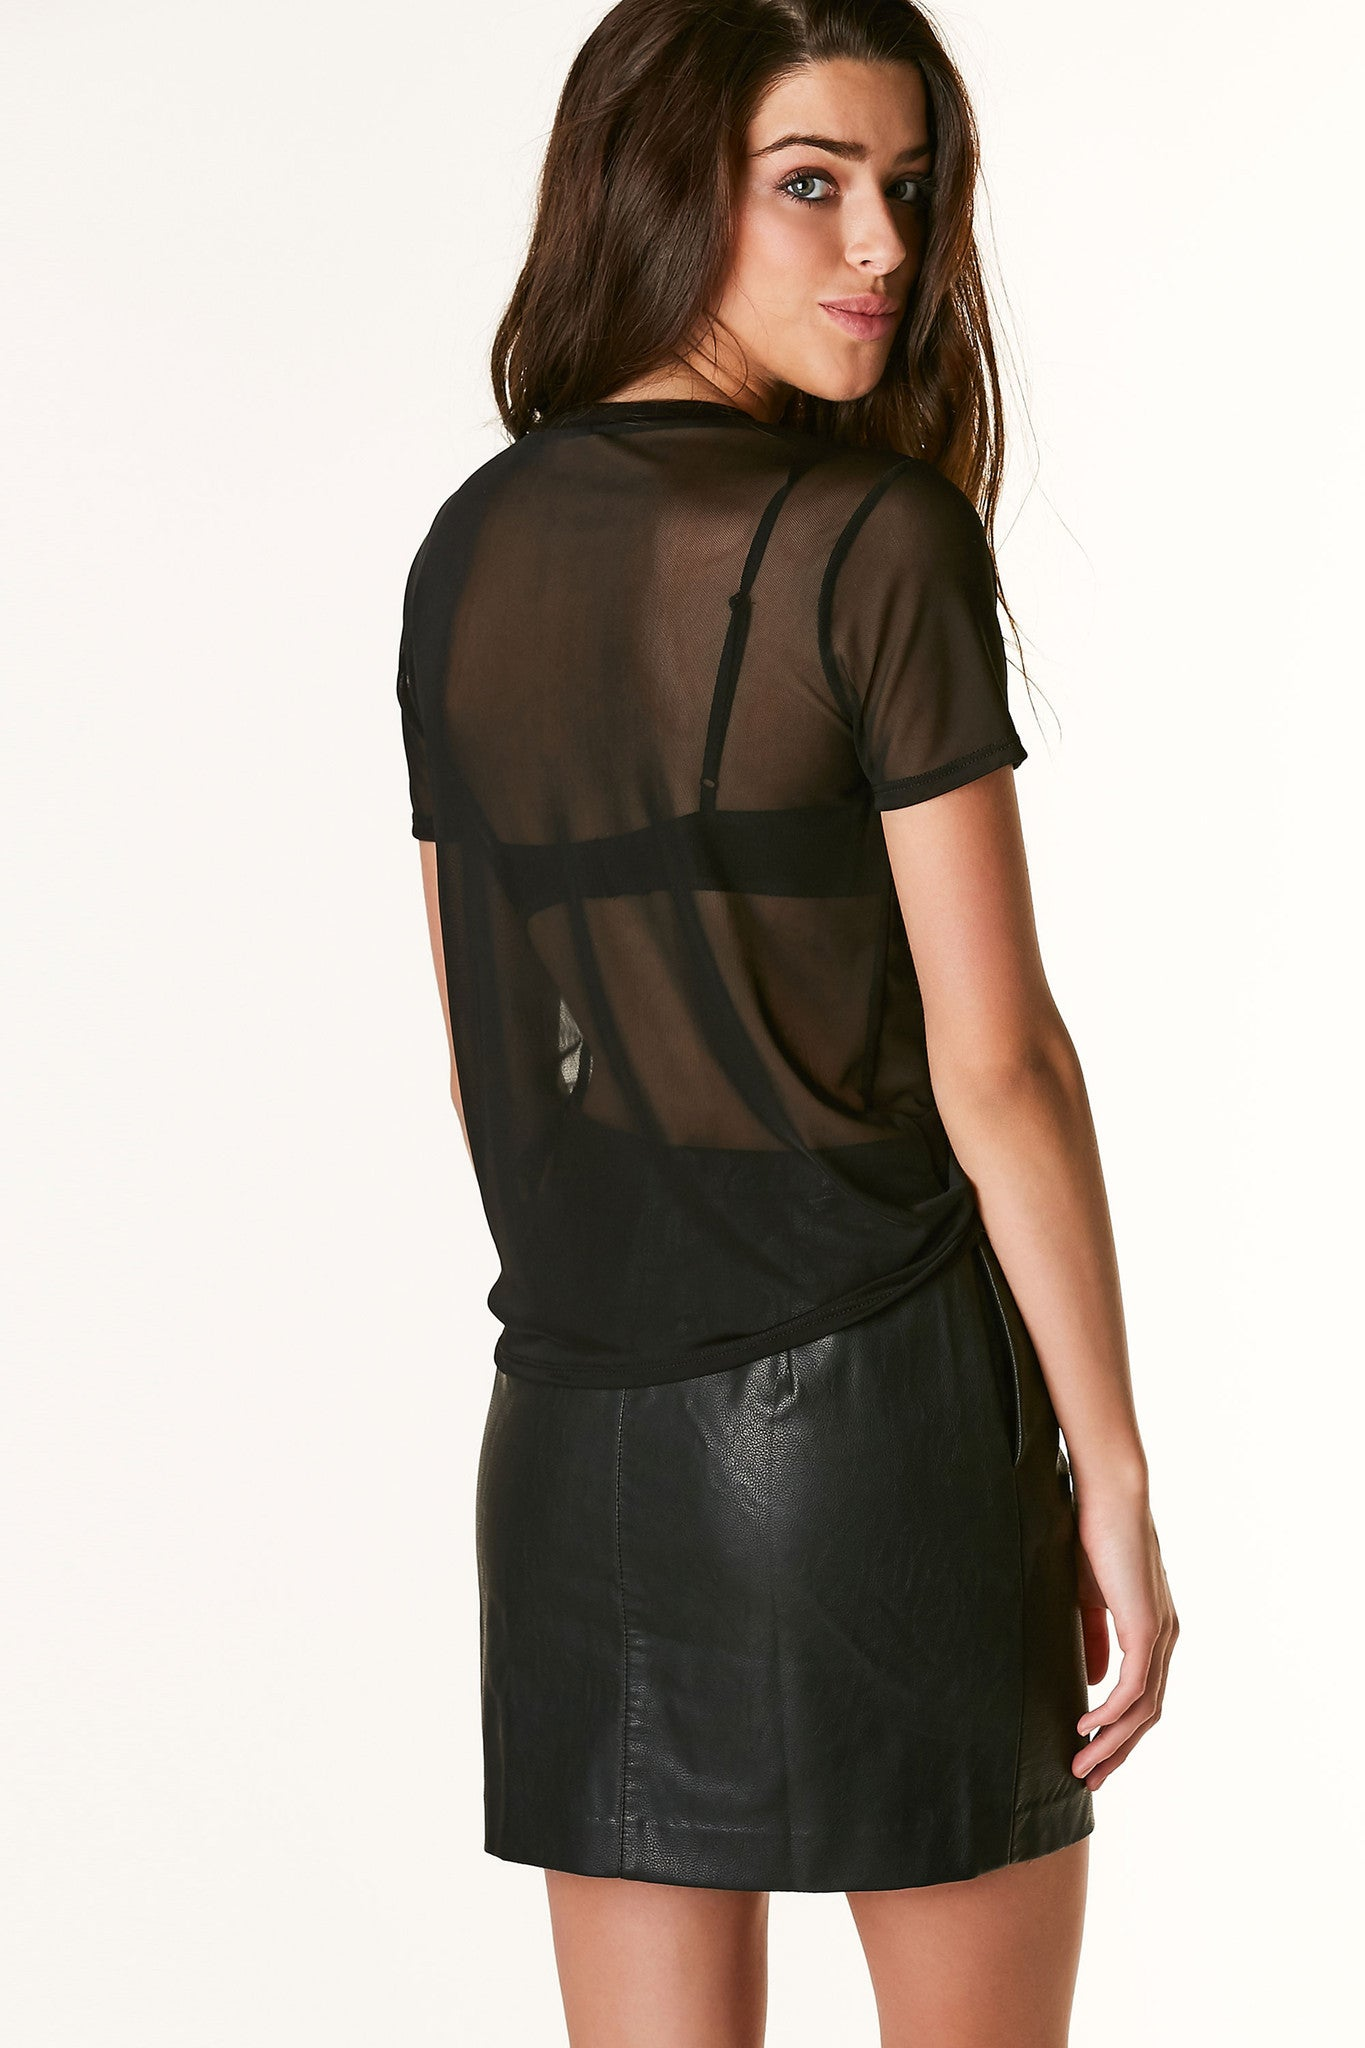 Sheer mesh T-shirt with crew neckline and straight hem finish. Contrast textured graphic in front with relaxed fit.